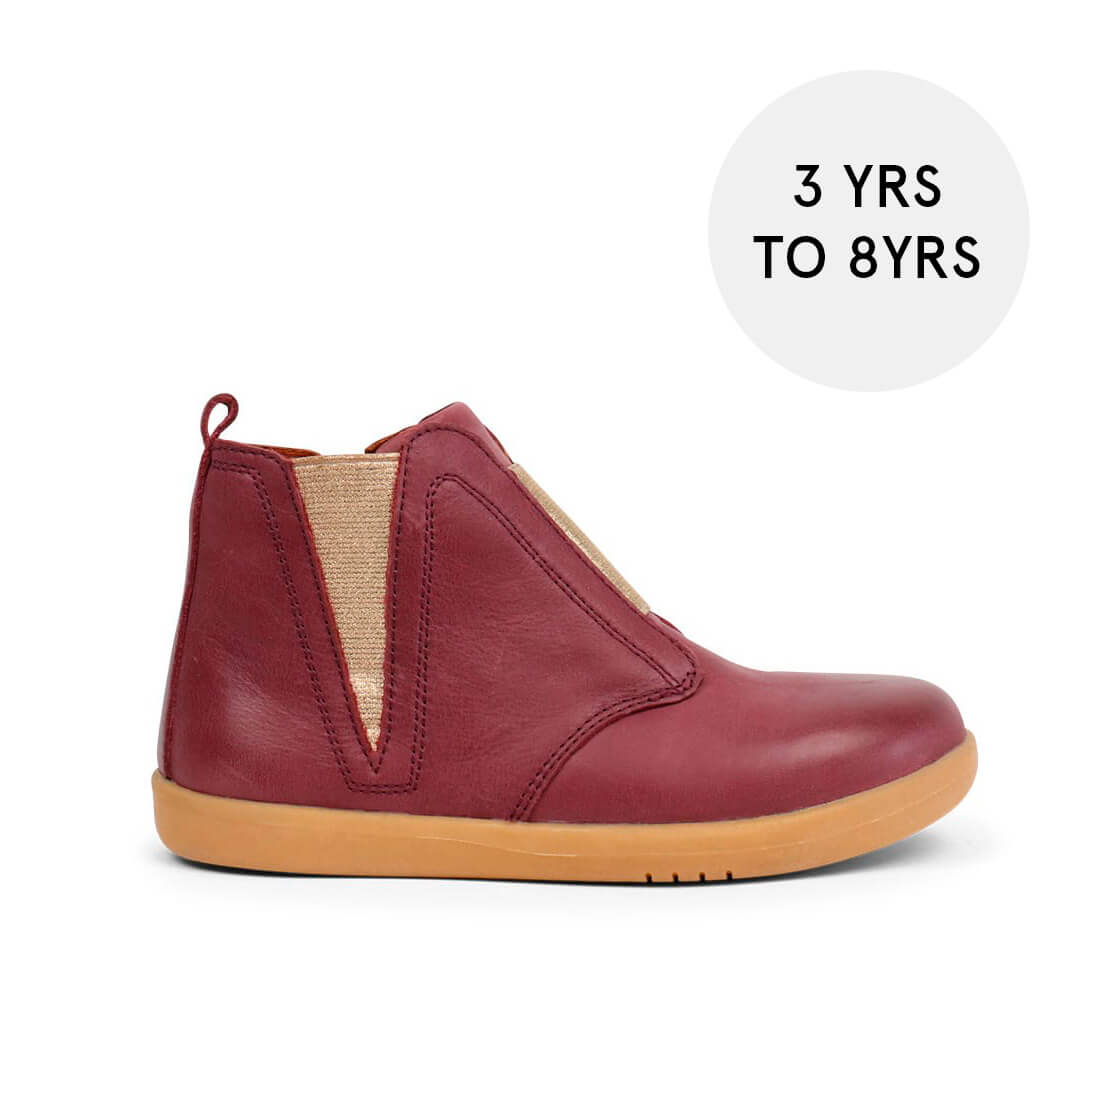 Bobux Signet Kid+ Boots – Plum W/Gold side